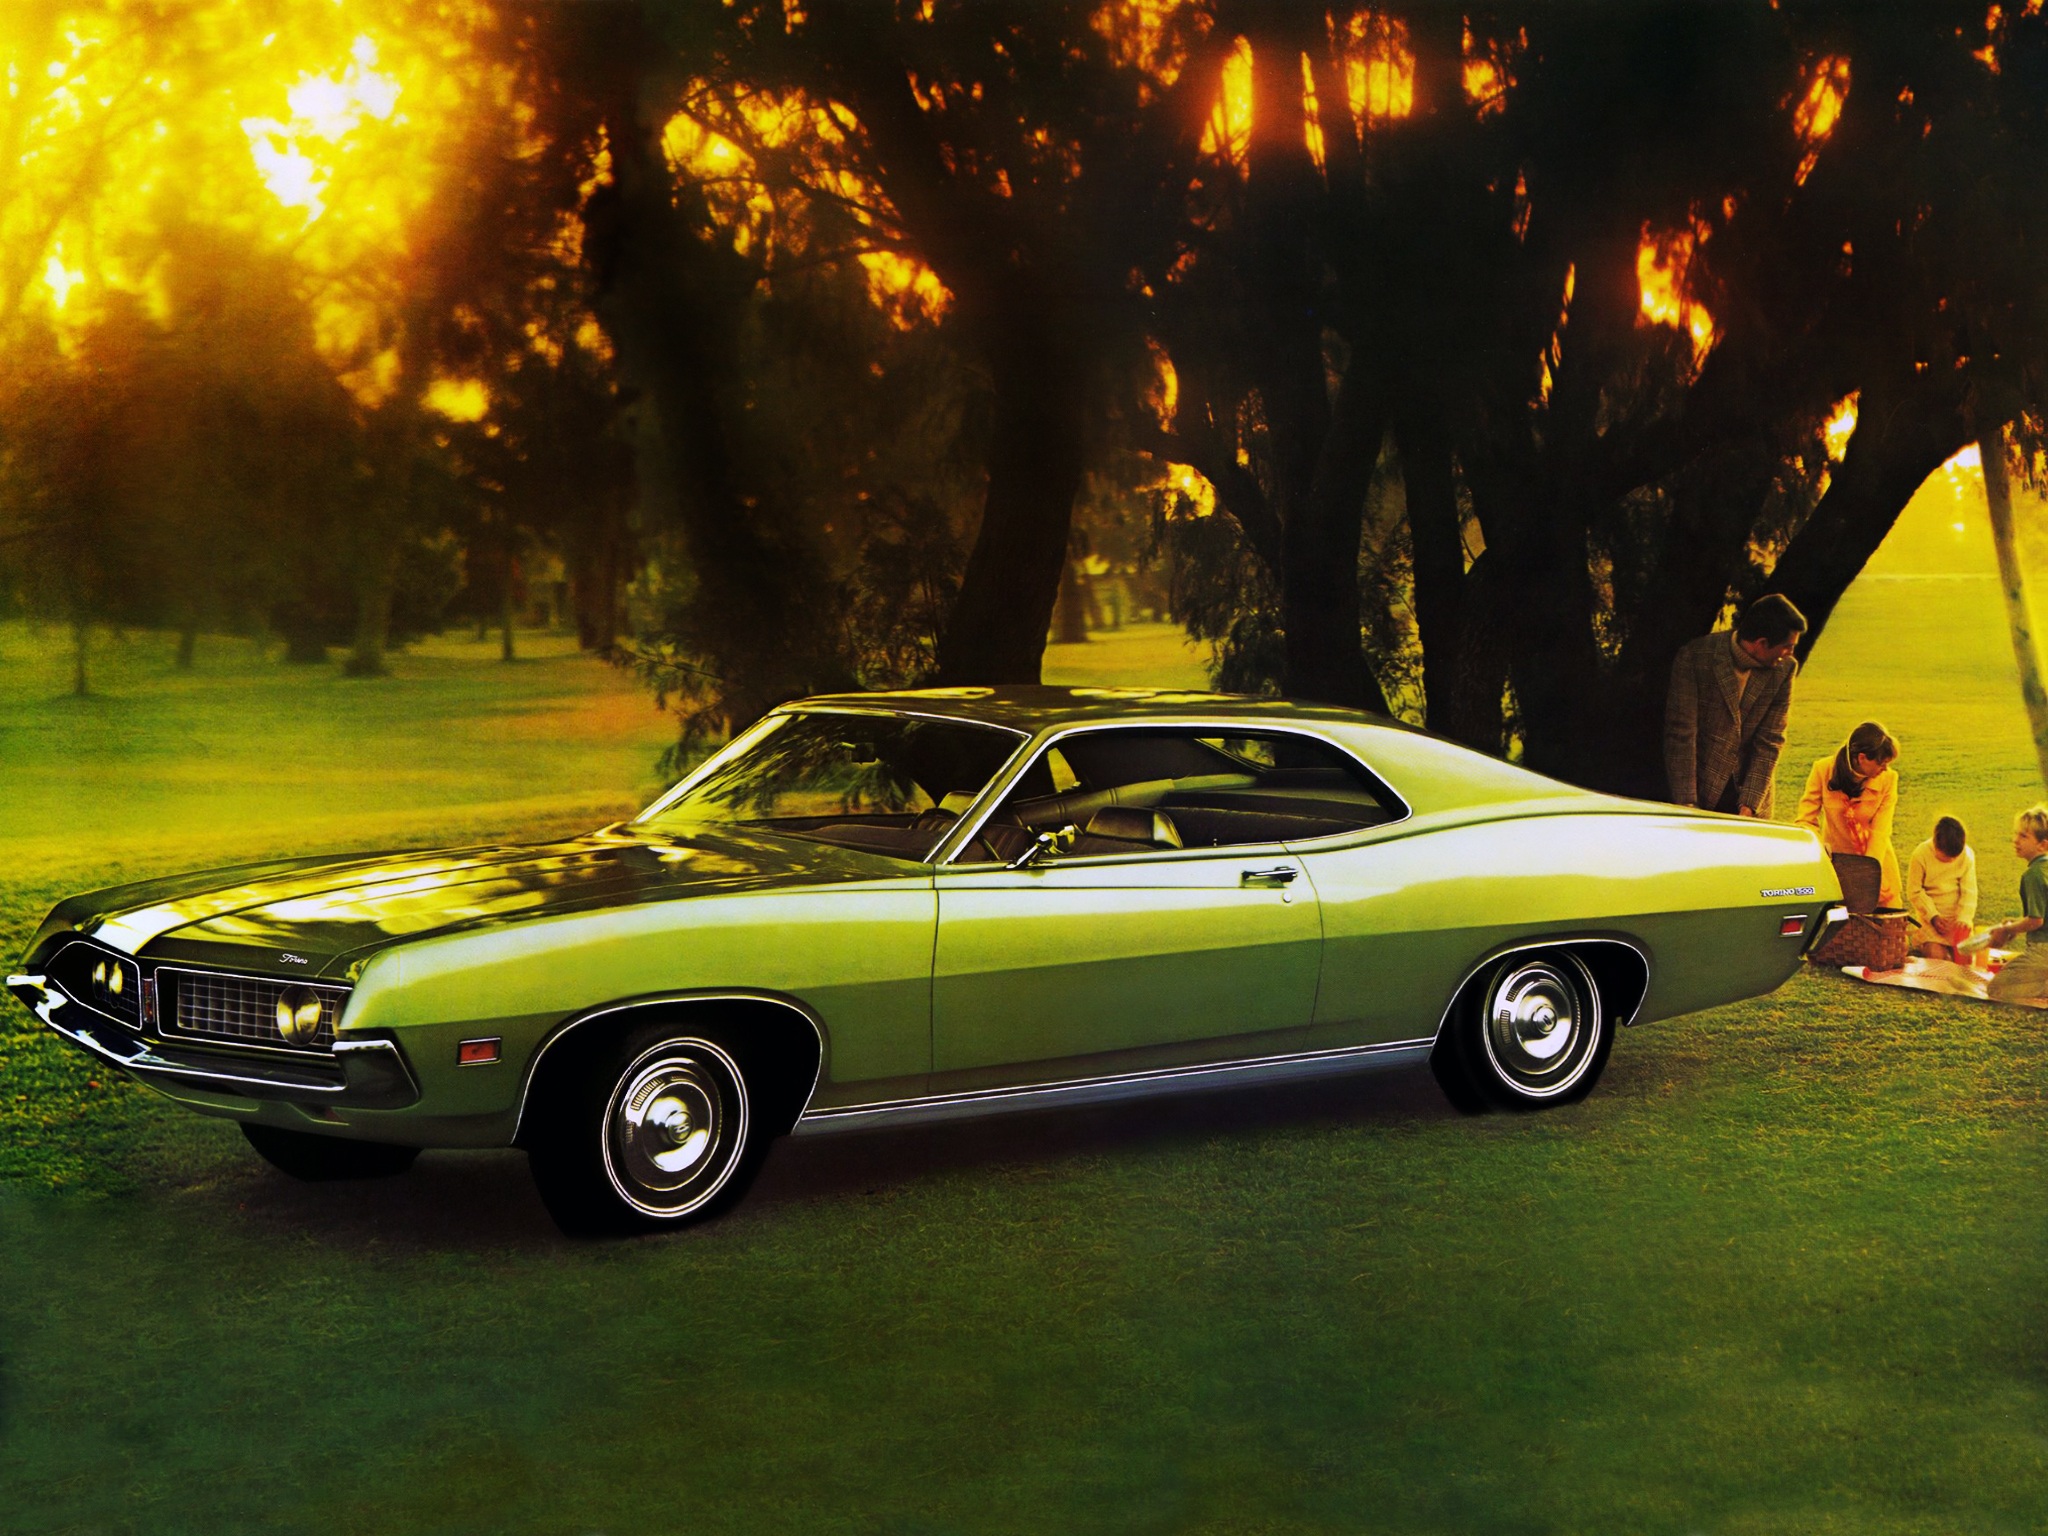 Classic Cars Images Ford Torino Hd Wallpaper And Background